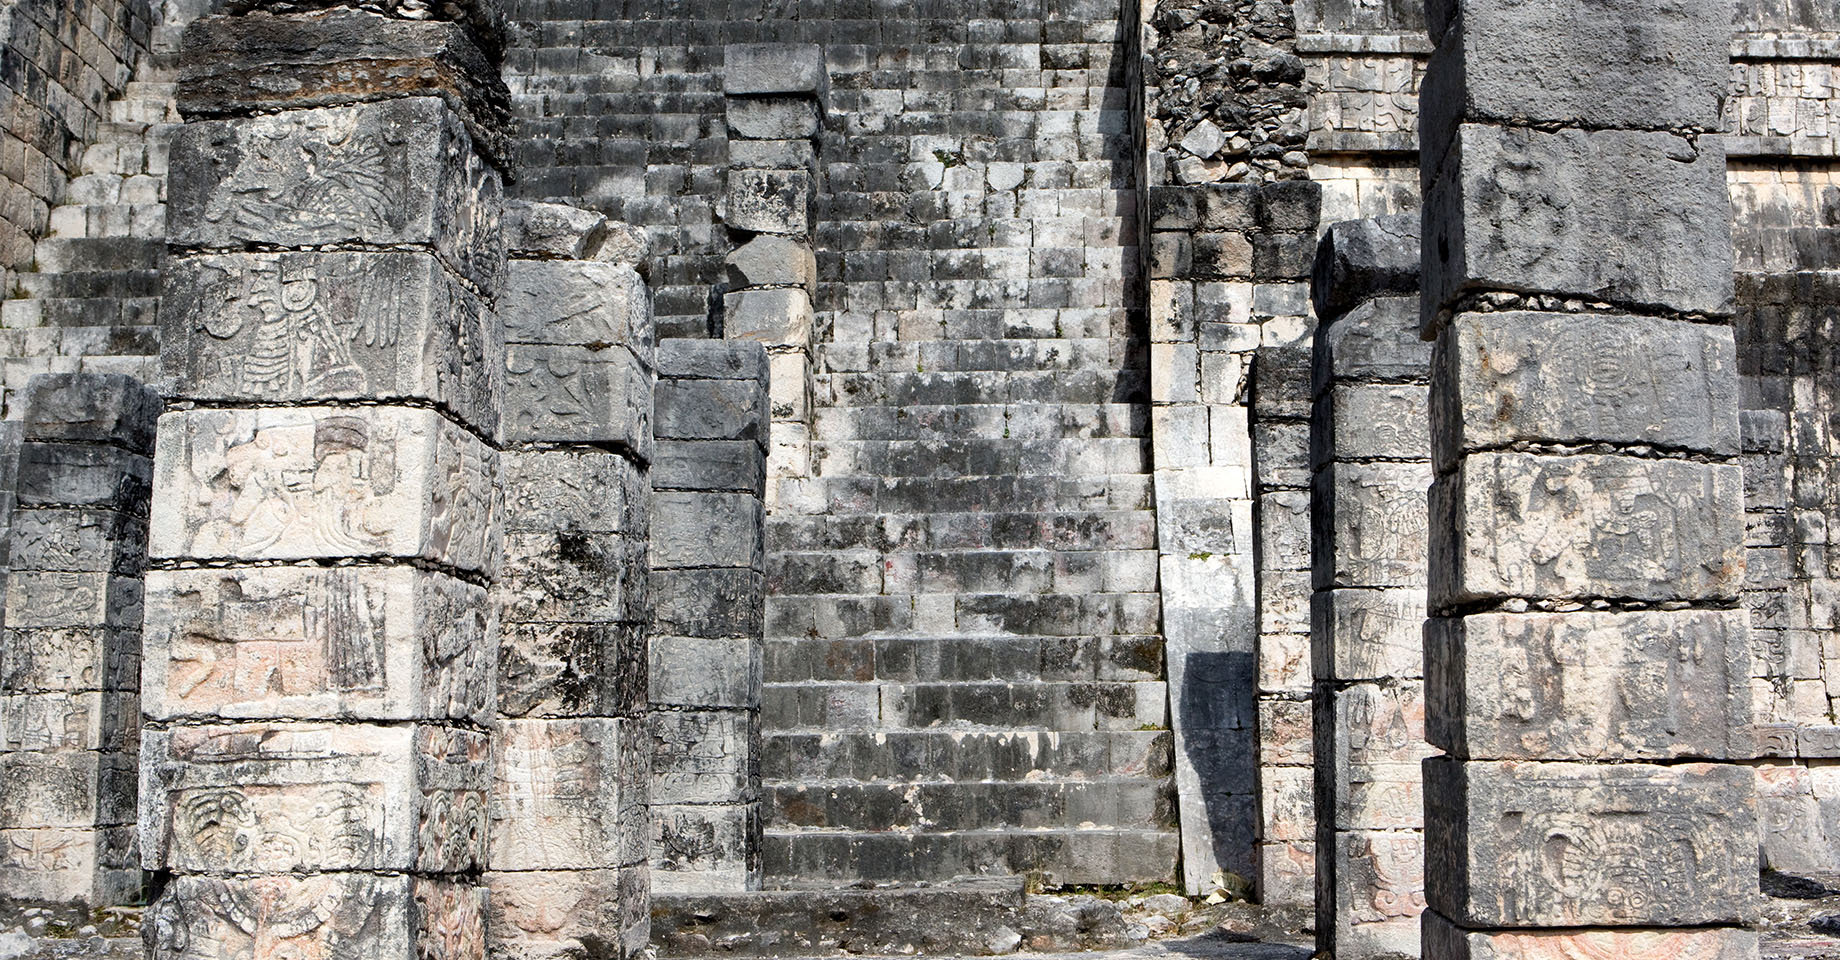 Chichen Itza temple ruins